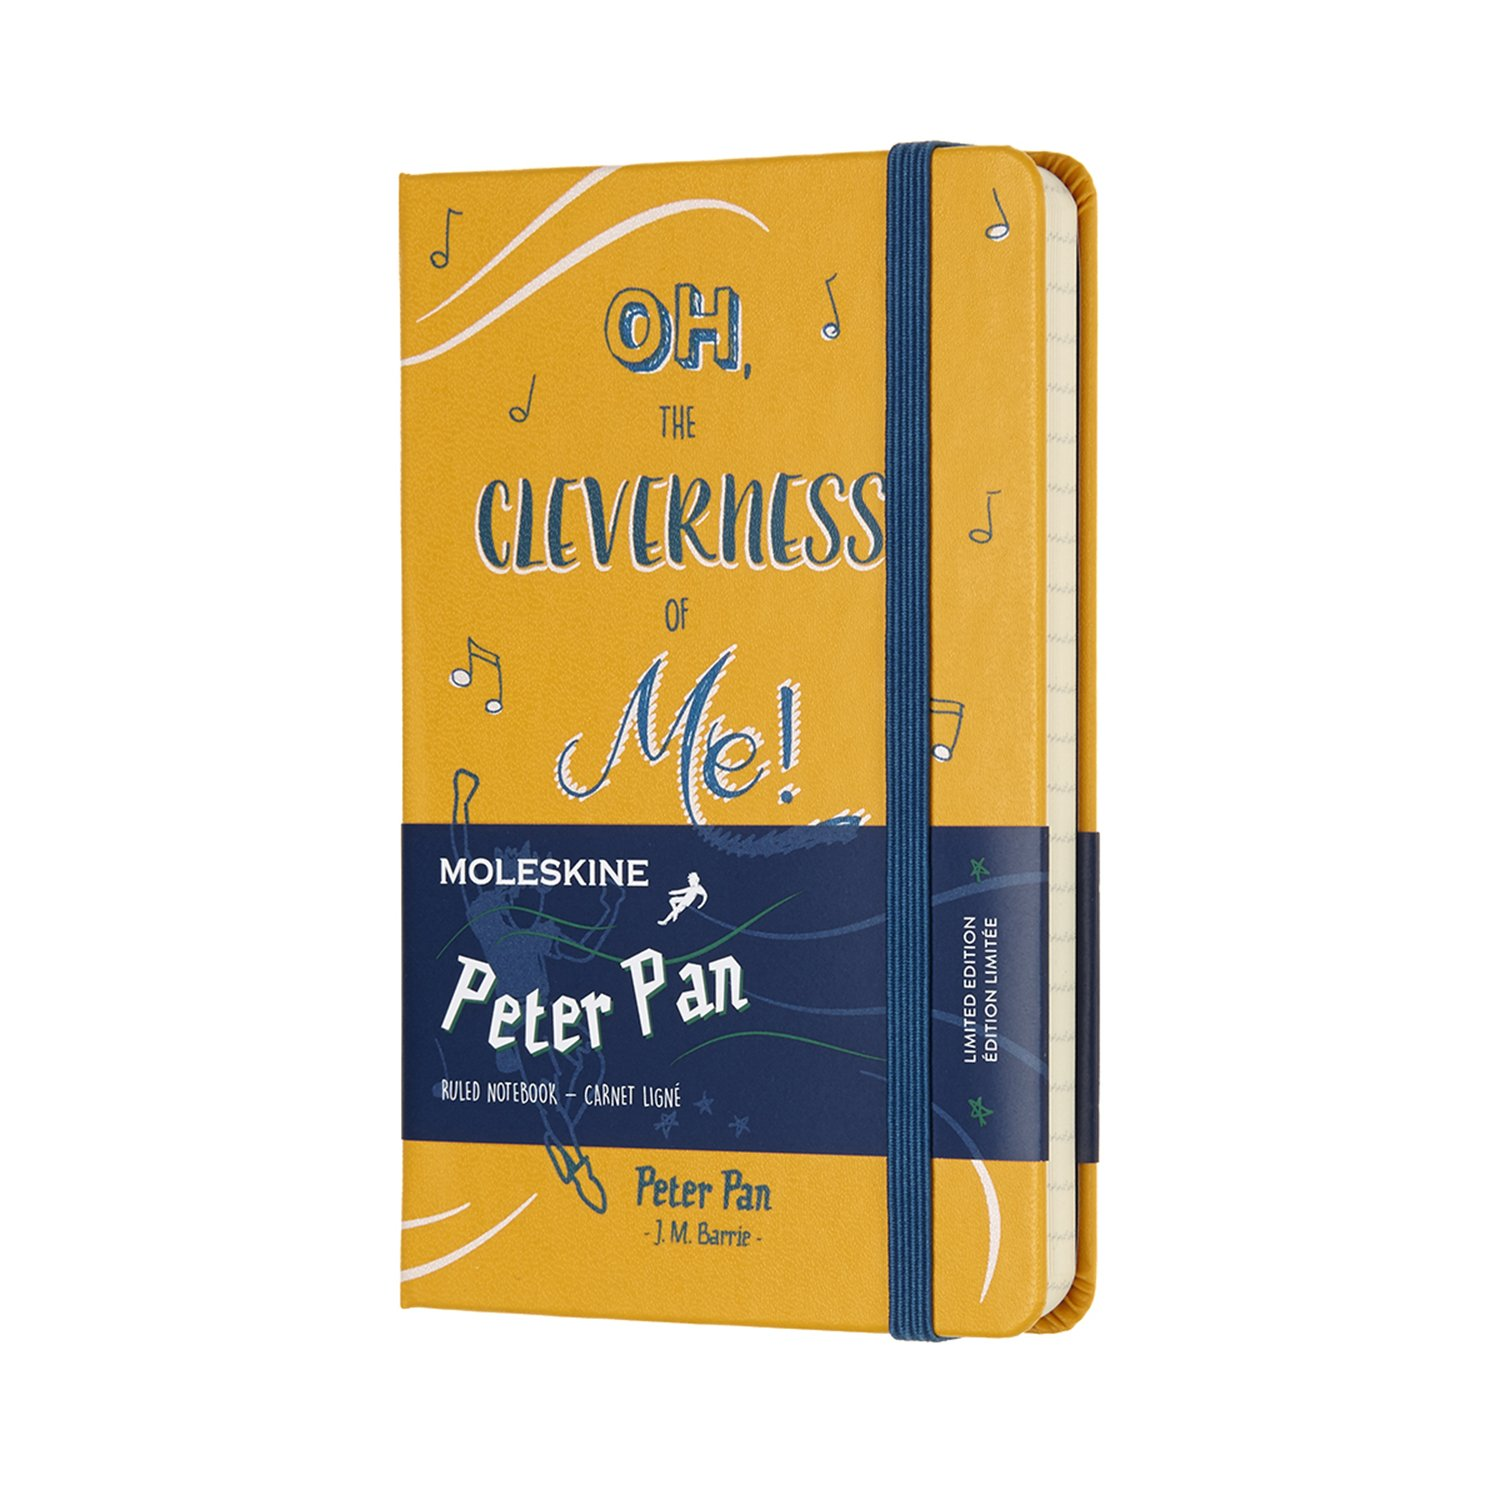 Moleskine Limited Edition Peter Pan Notebook Pocket Ruled...